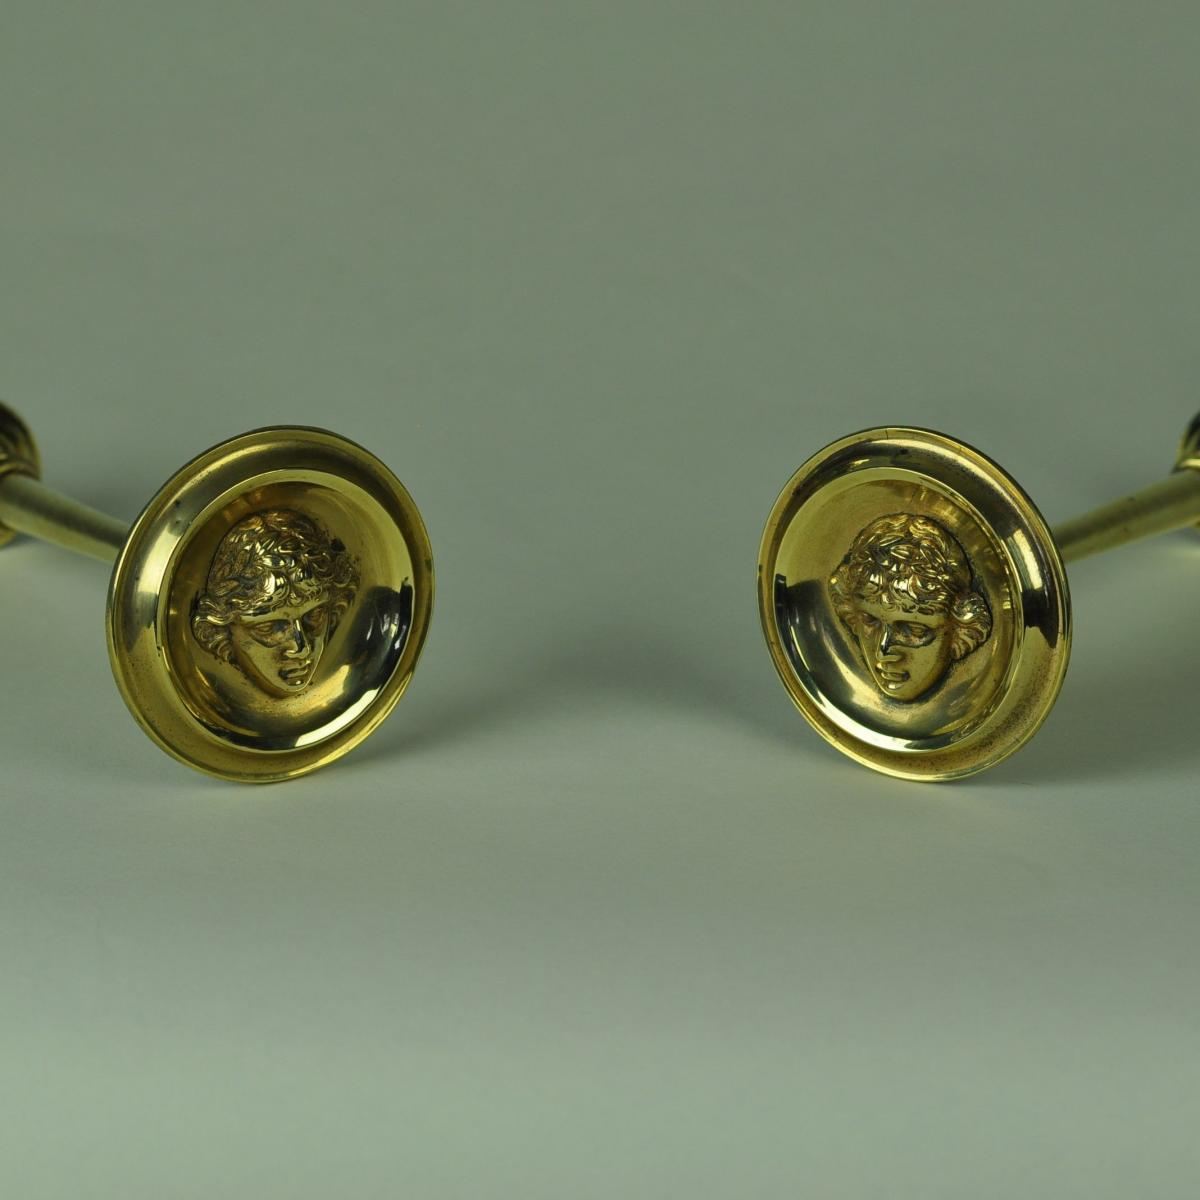 Pair of brass Curtain tiebacks